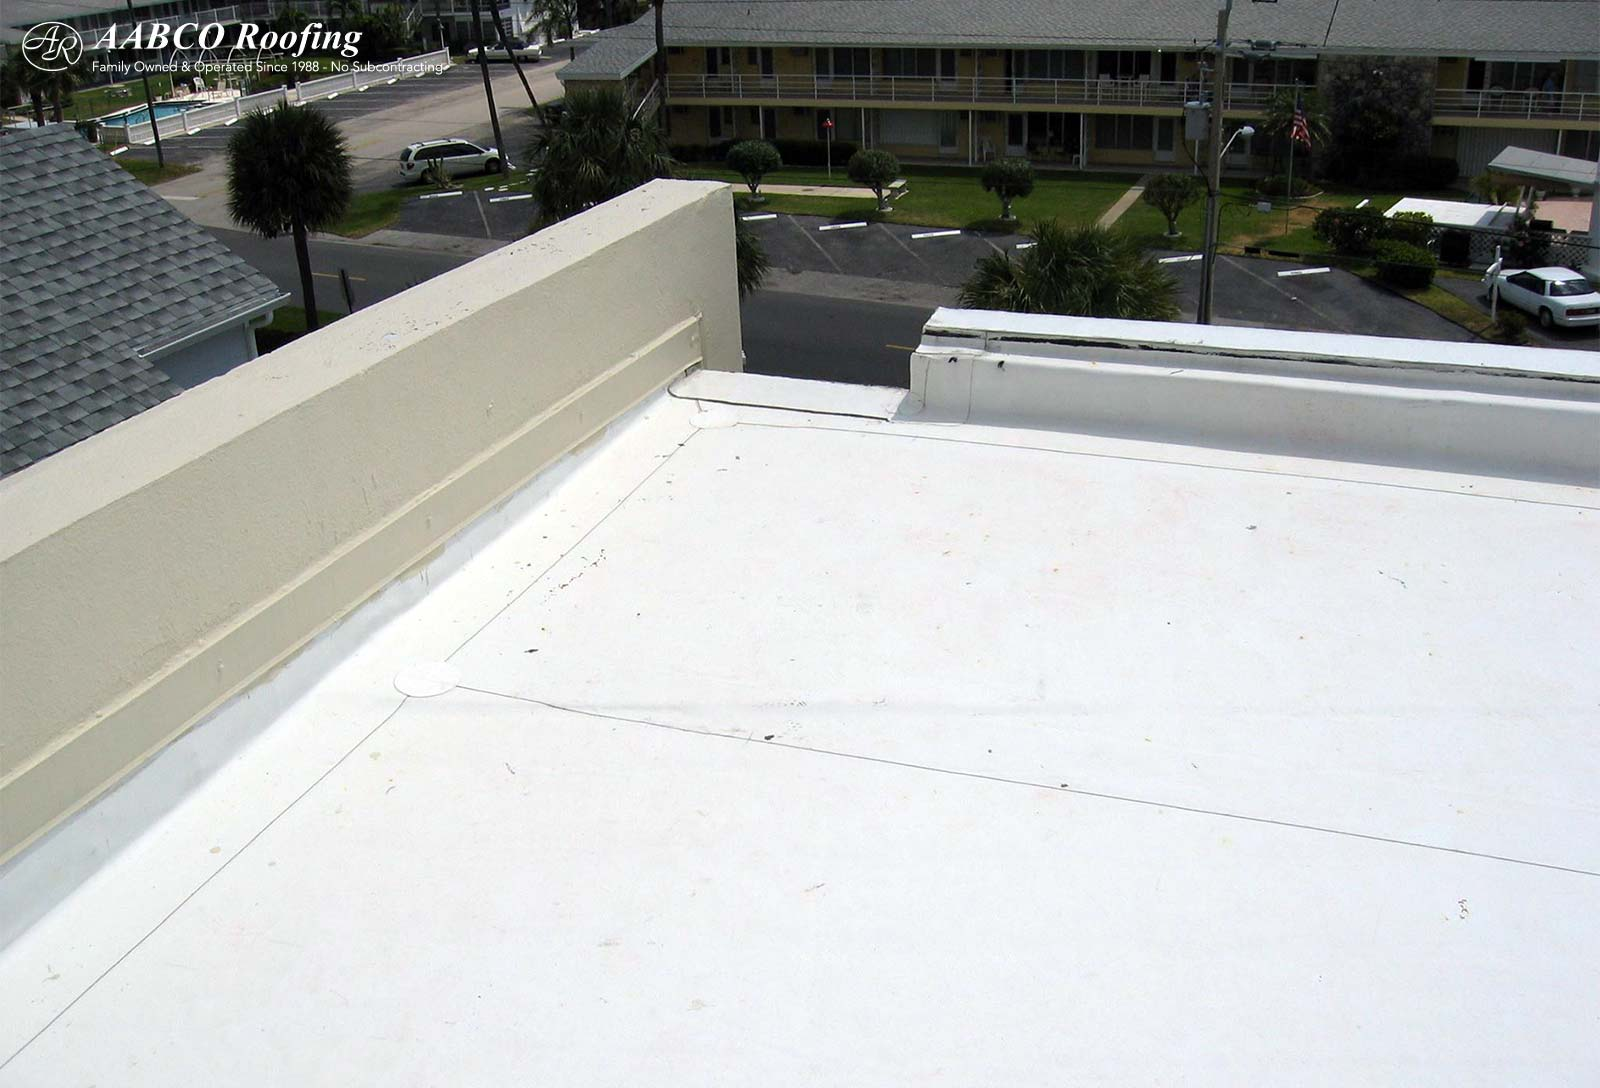 GACO silicone flat roof coating